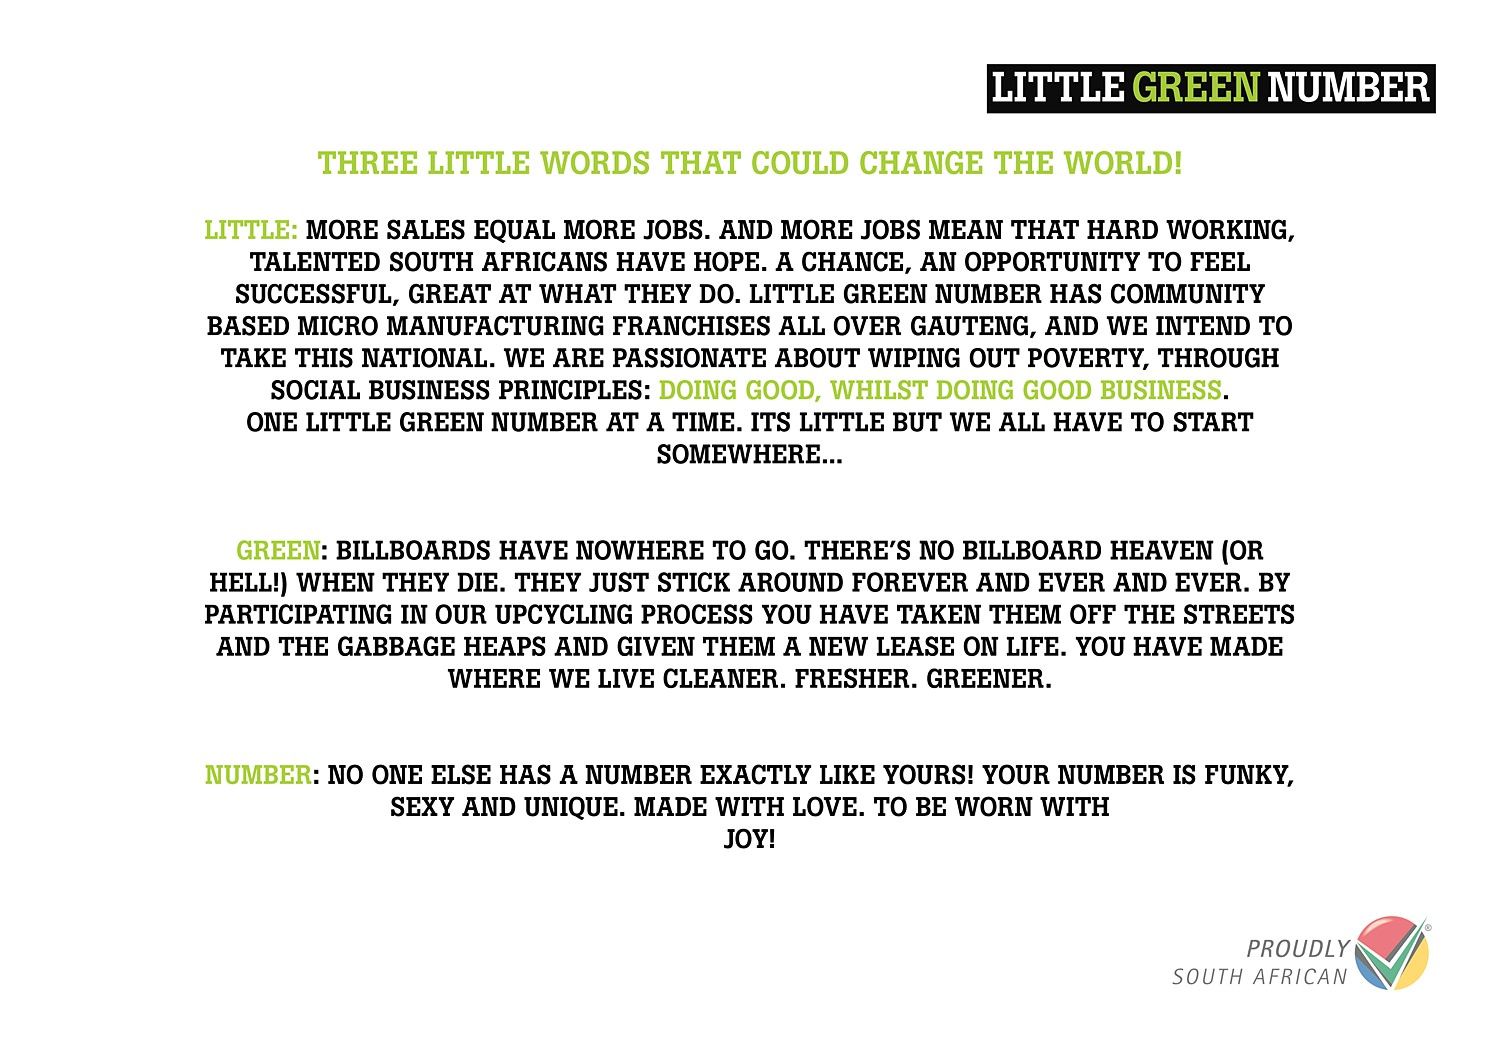 Little Green Number Catalogue Buy1give1 upcycling billboards gauteng2.jpg